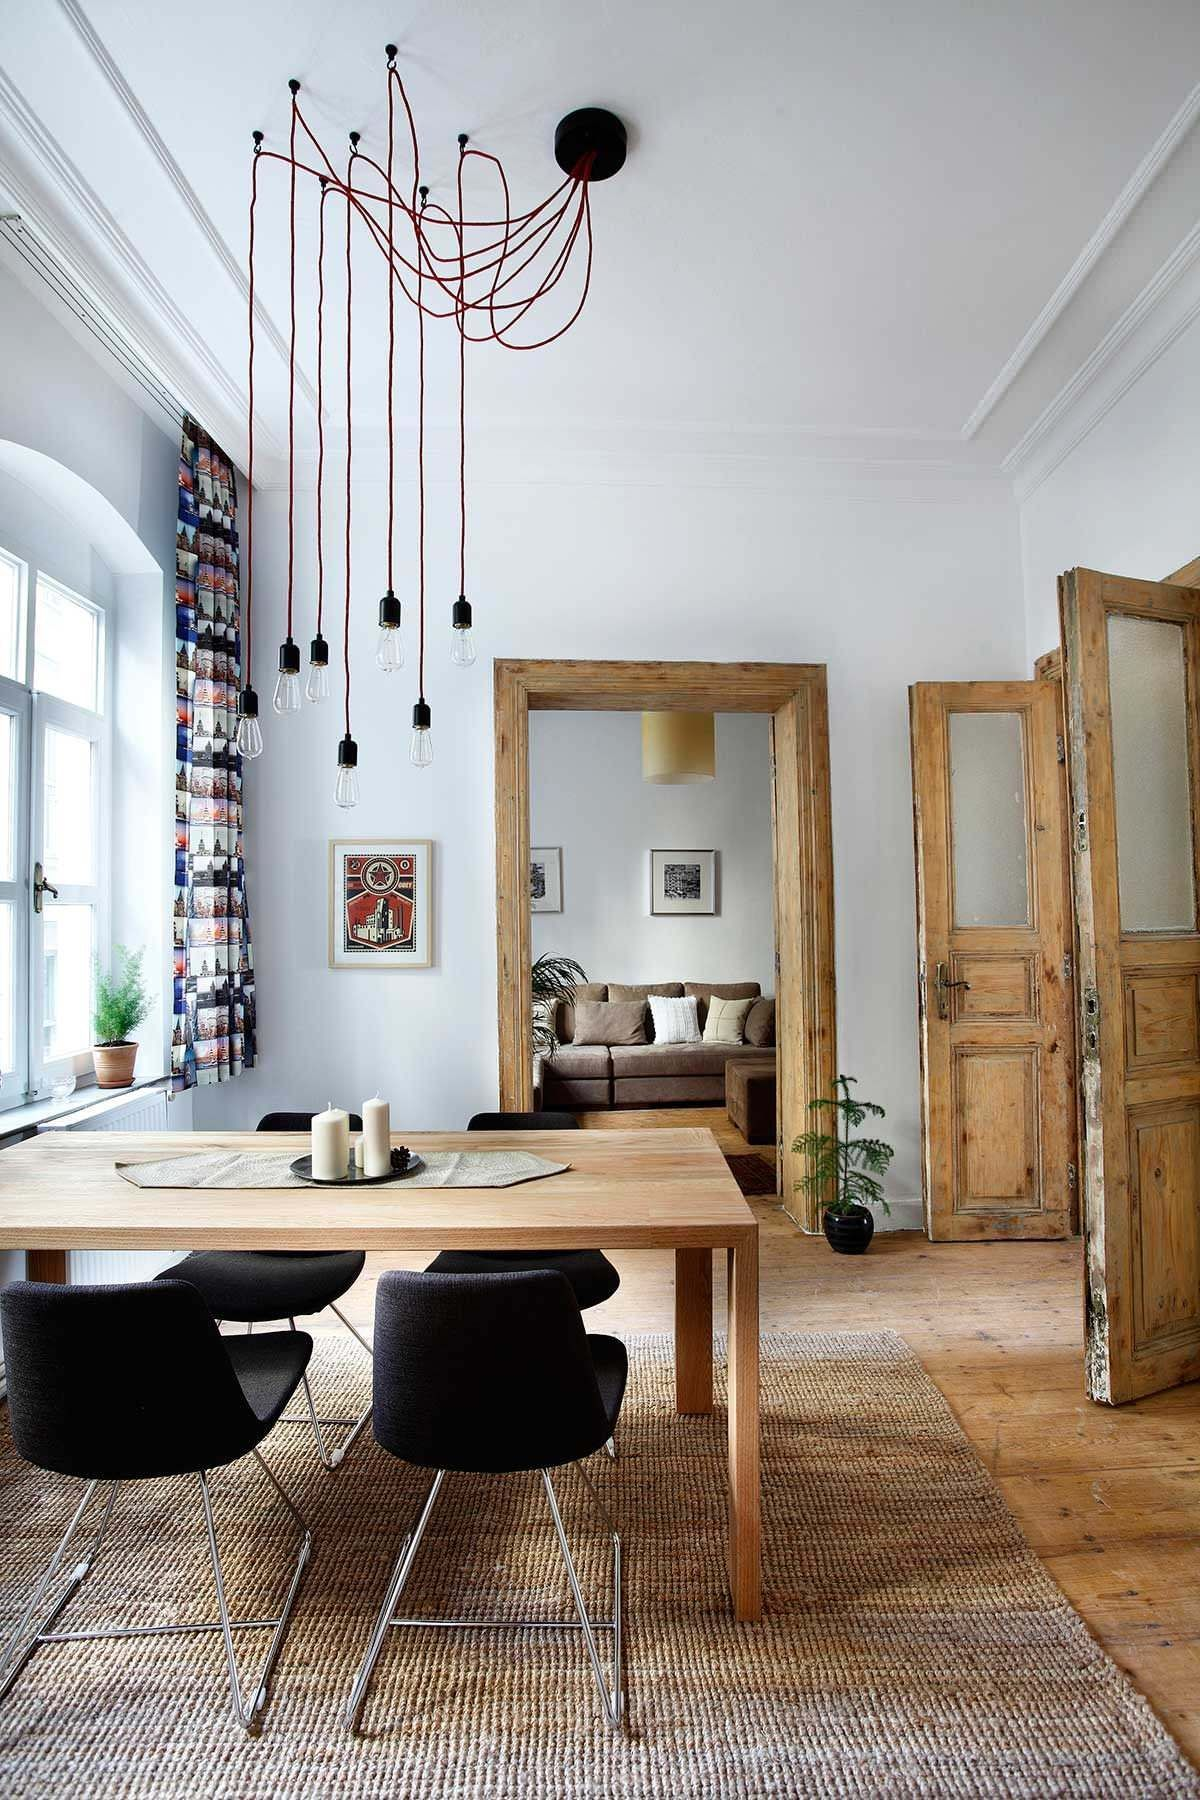 Rustic Dining Room Decor Ideas To Warm Up Your Dining Experience